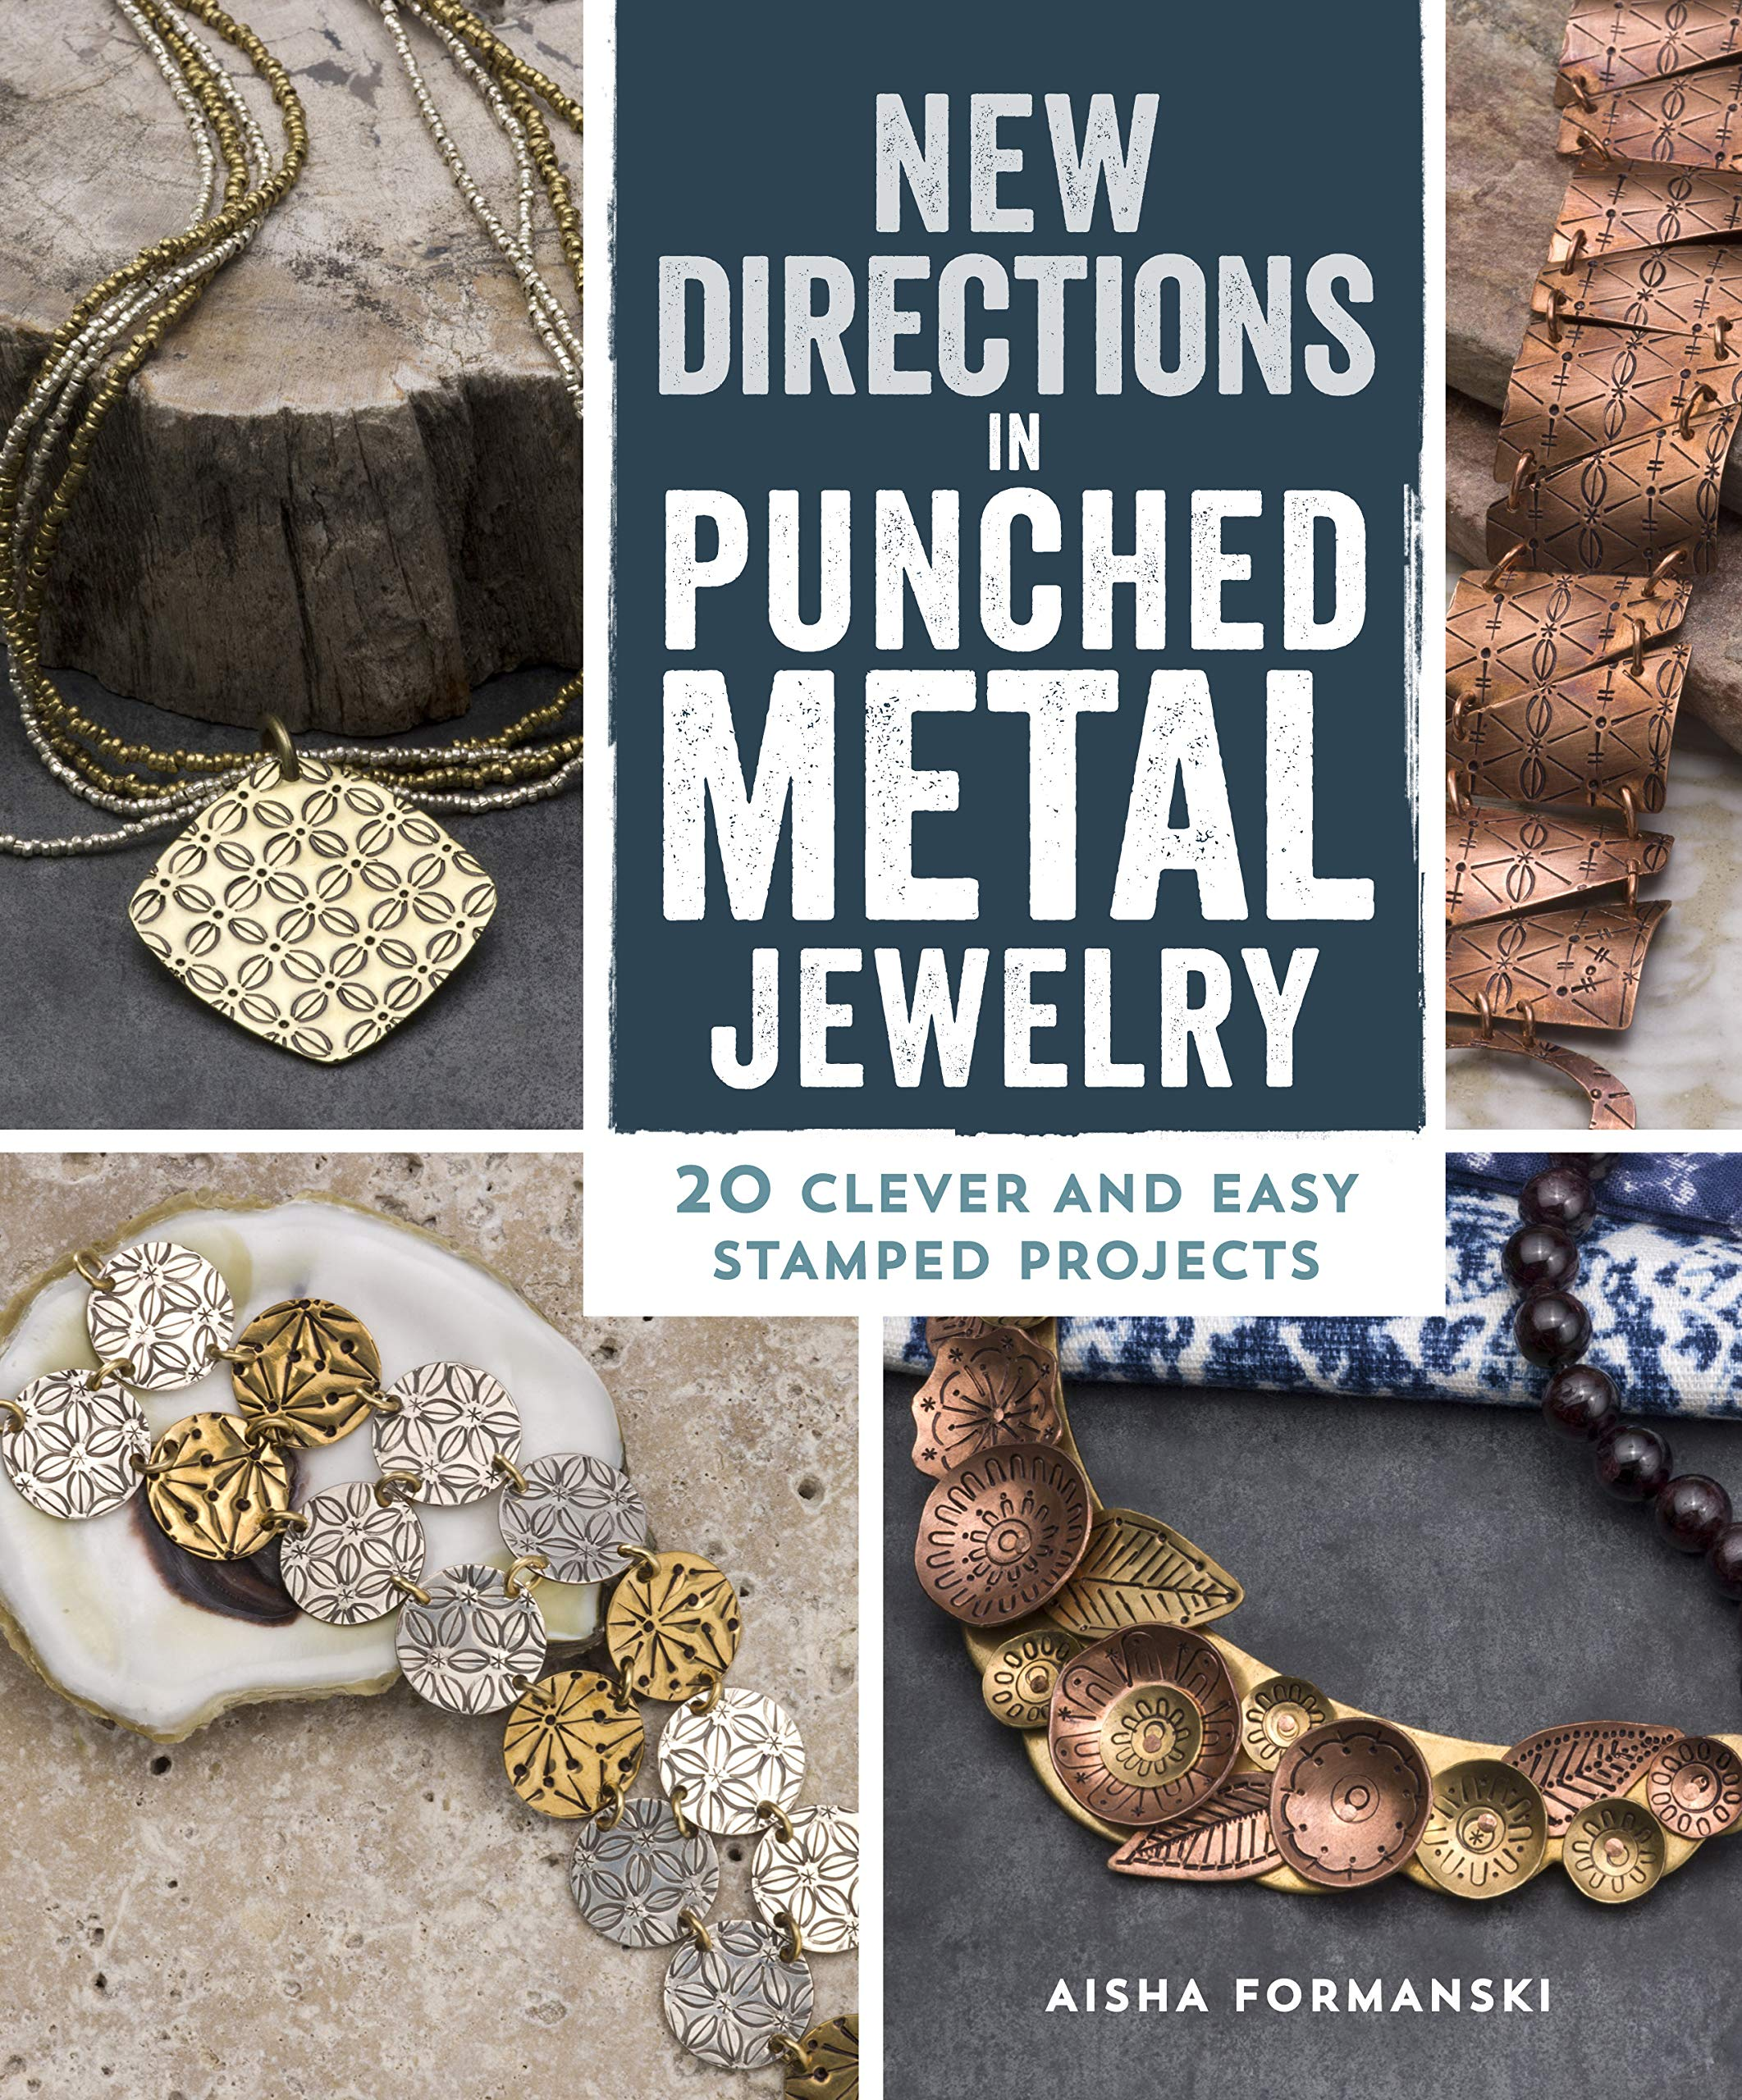 New Directions In Punched Metal Jewelry  20 Clever And Easy Stamped Projects